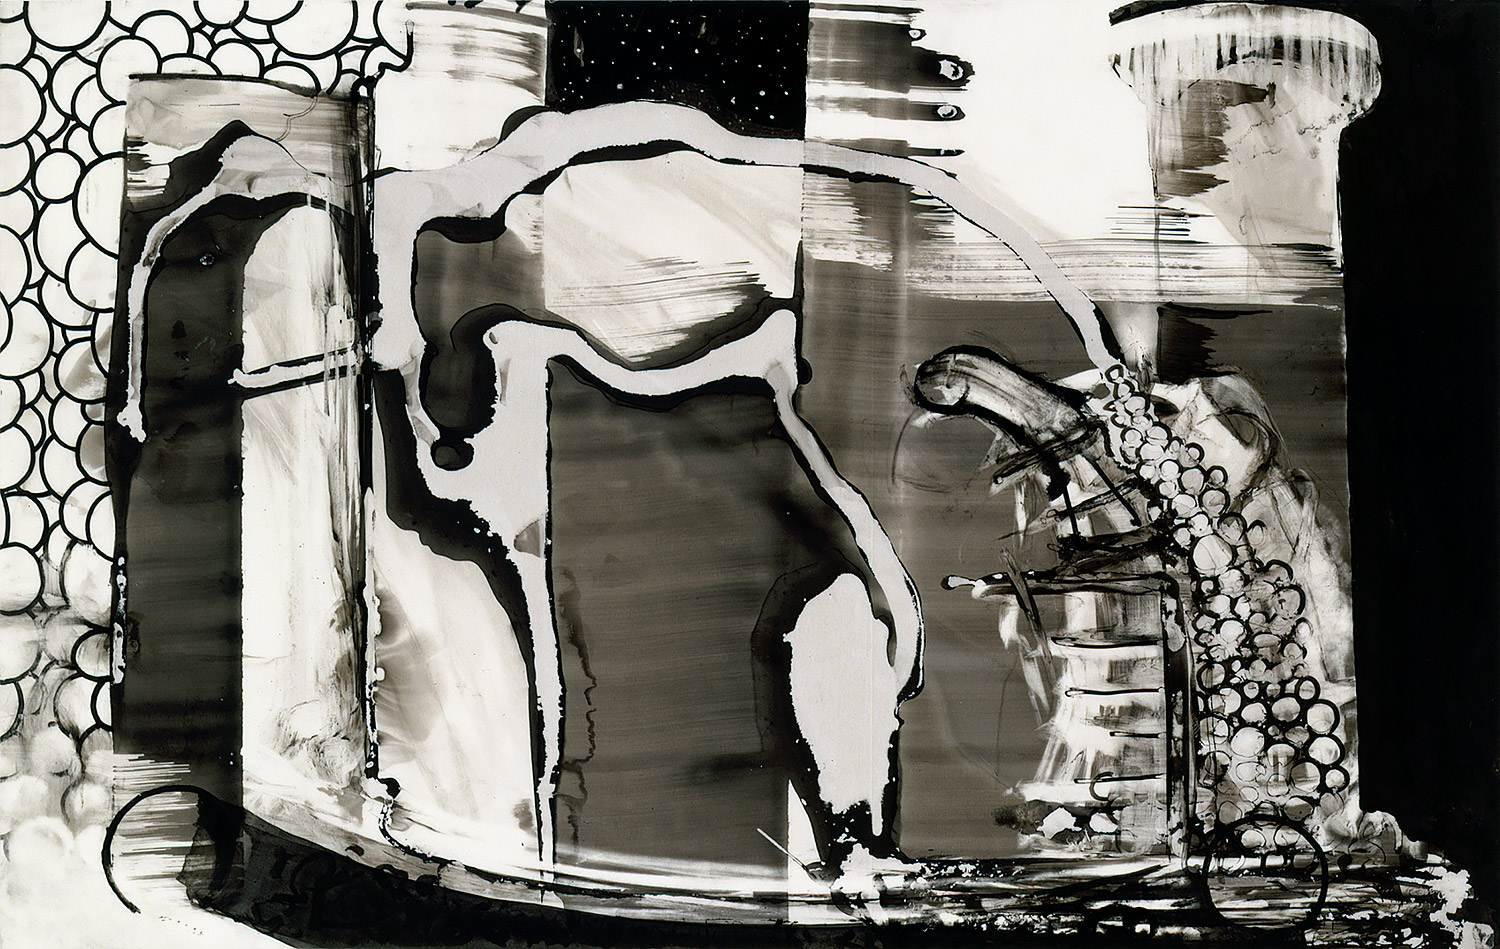 """Brian Wood <br> """"Iacchus,"""" 2001 <br> Ink on mylar <br> 10.5 x 16 in."""